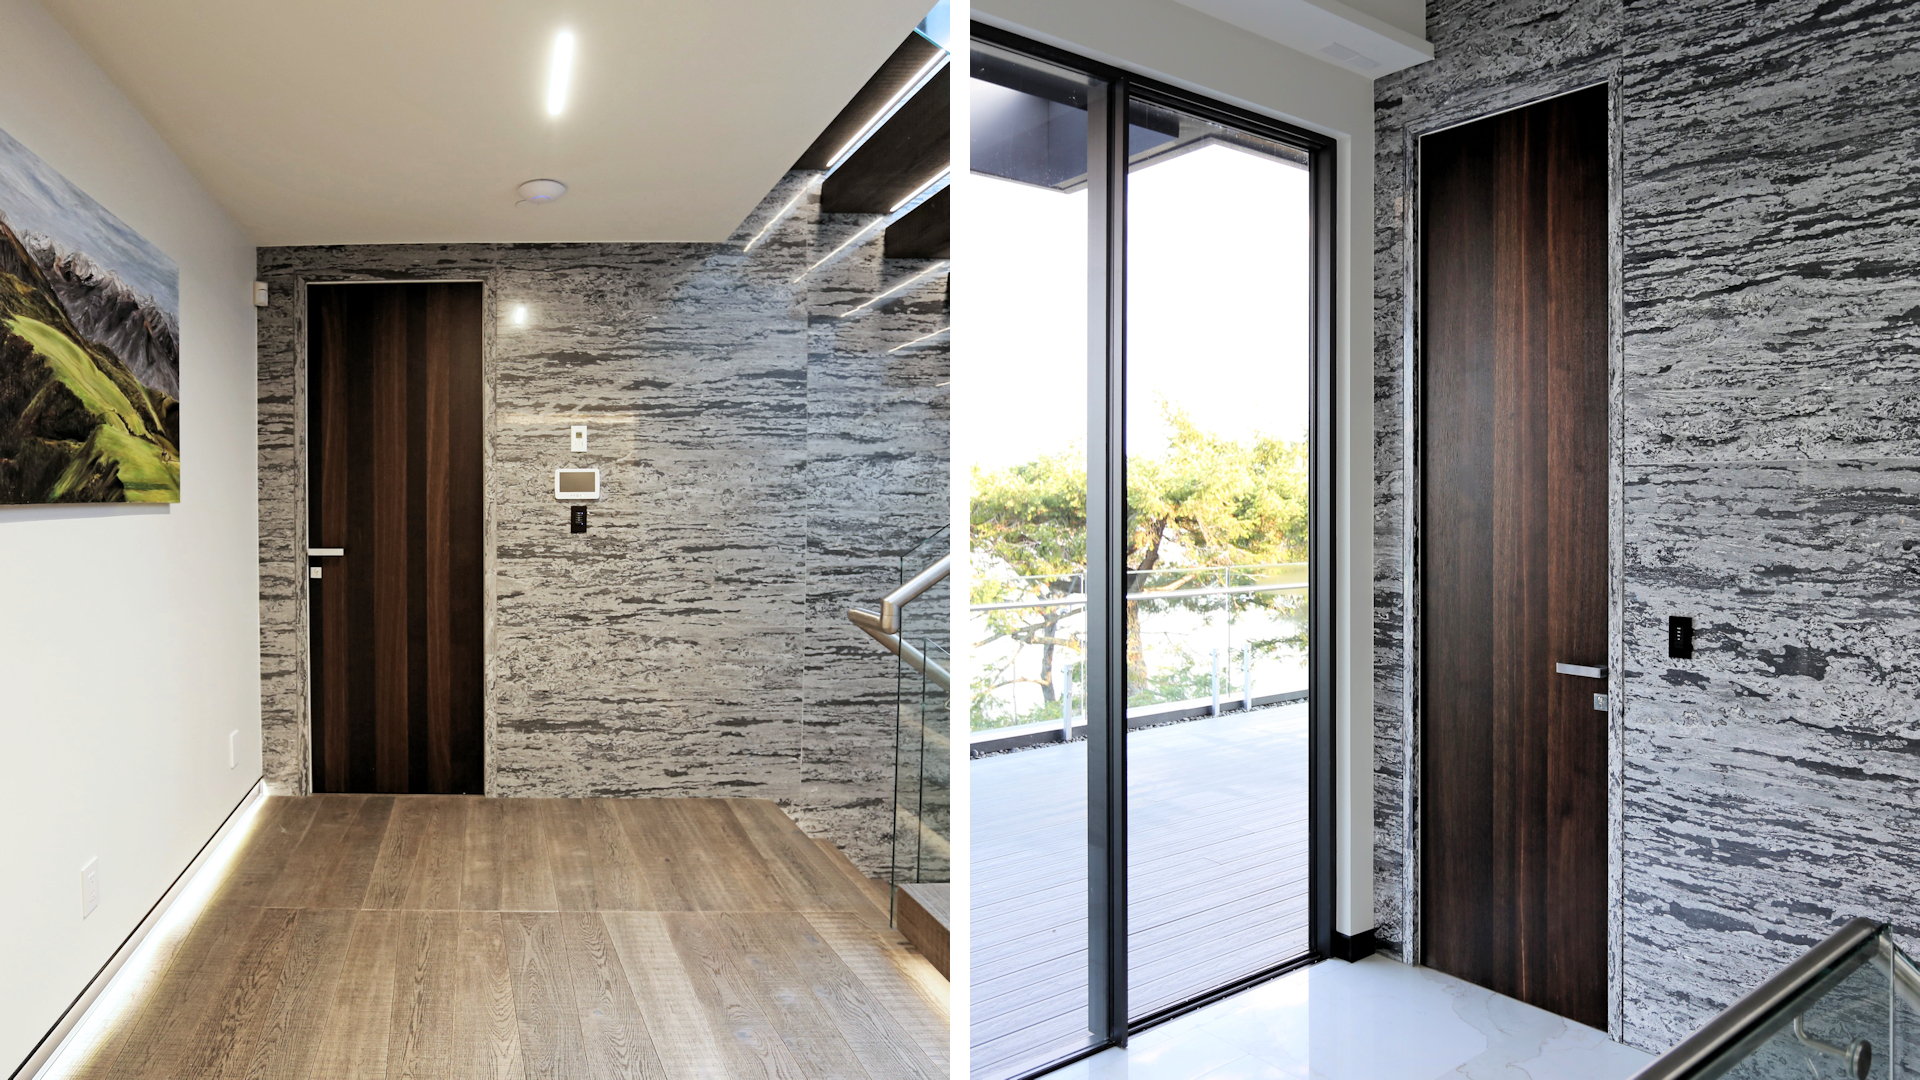 Isleview Rd, West Vancouver - Barausse Interior Doors